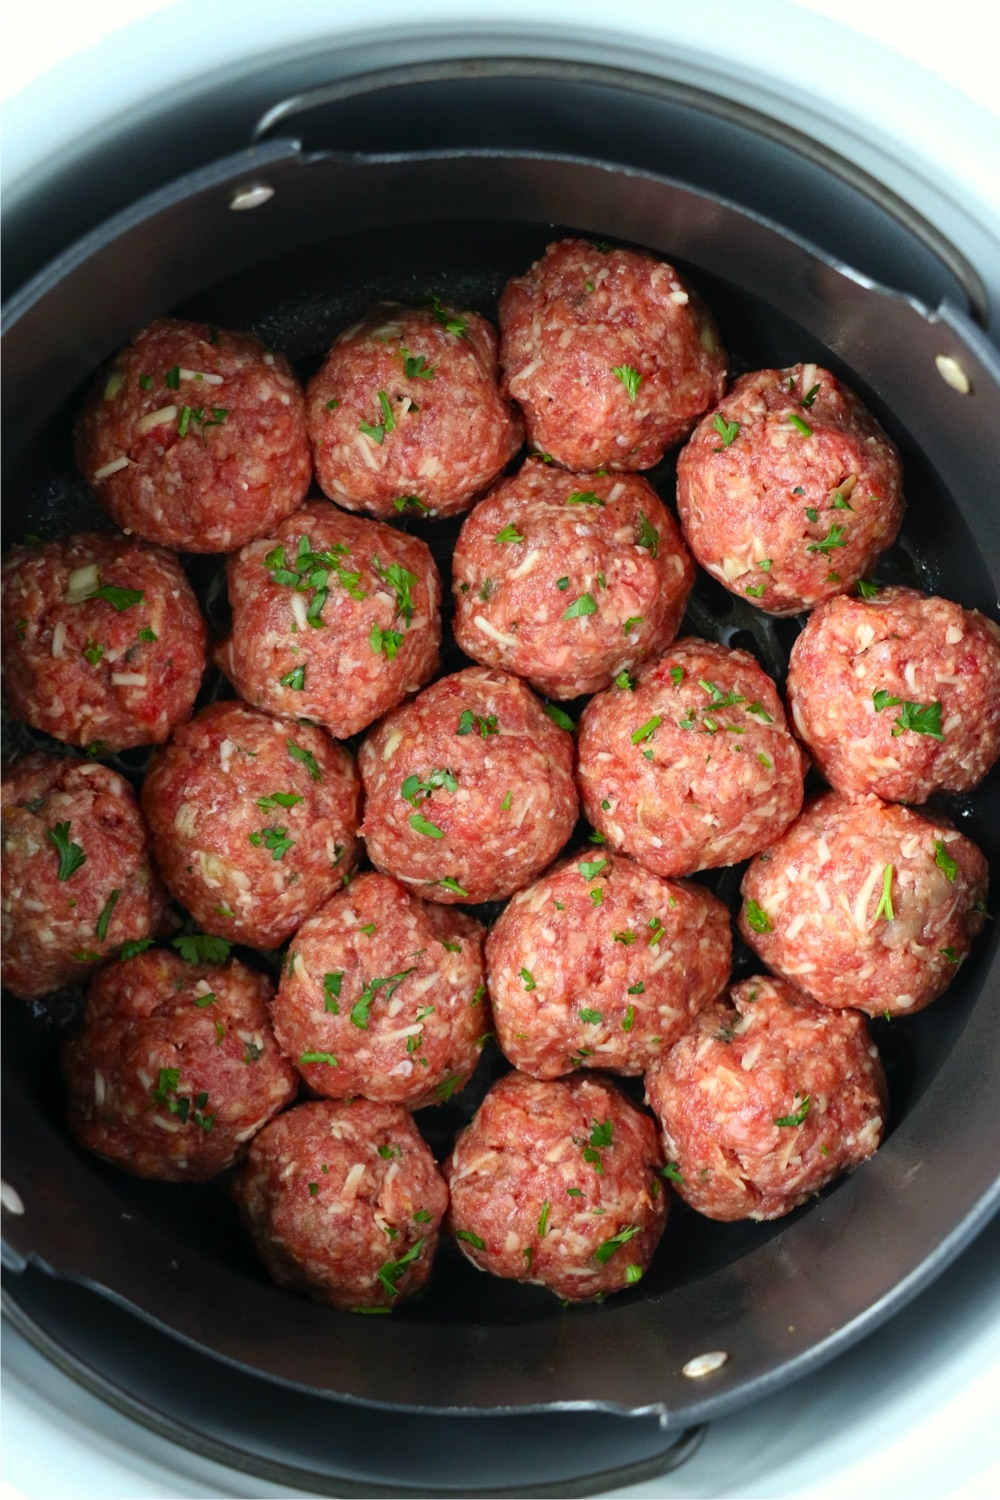 air fryer basket filled with uncooked meatballs